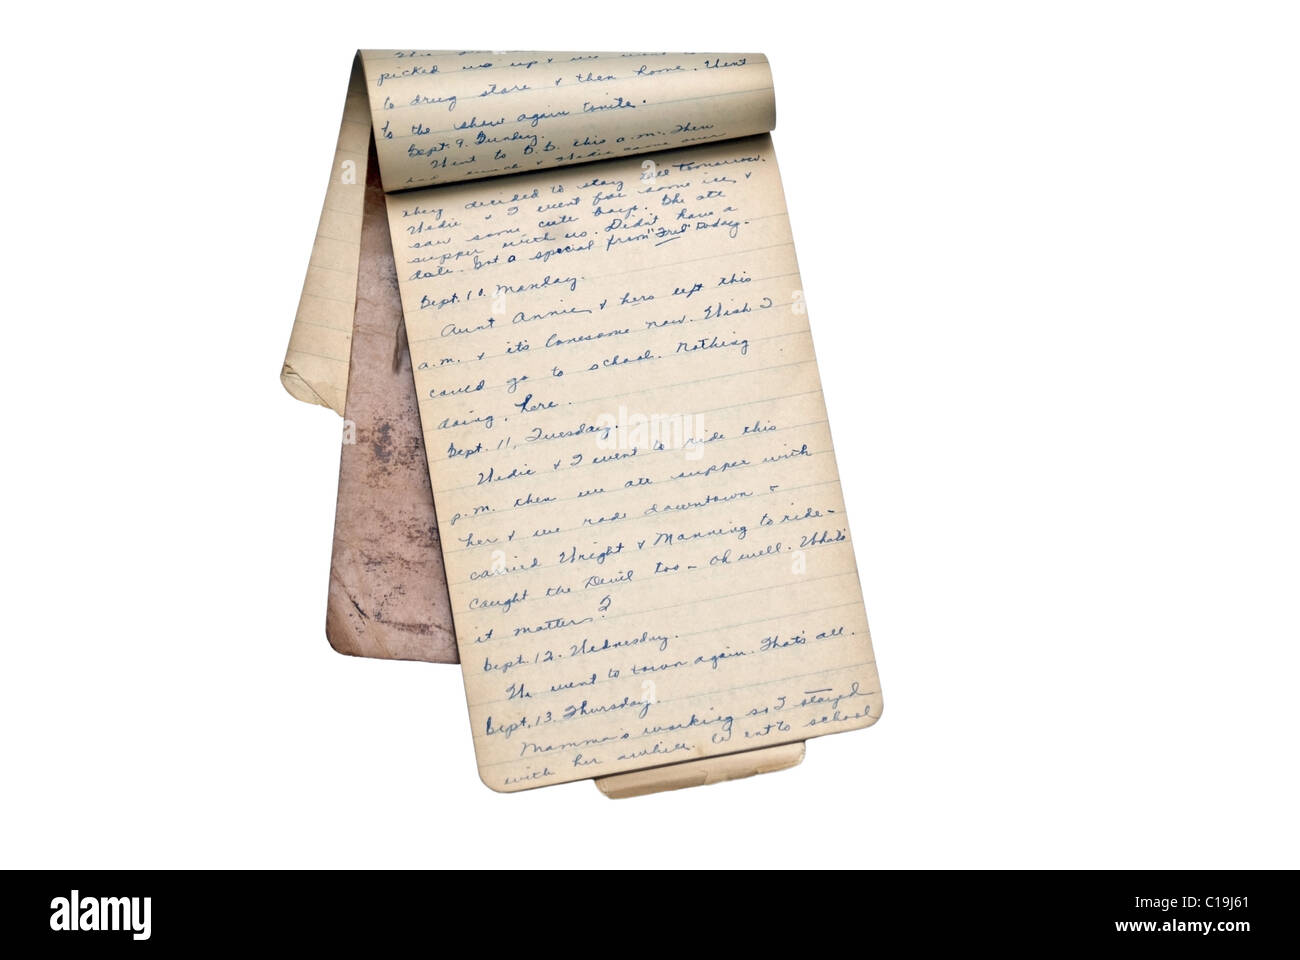 An old notepad used as a diary for a girl in college in1928. - Stock Image